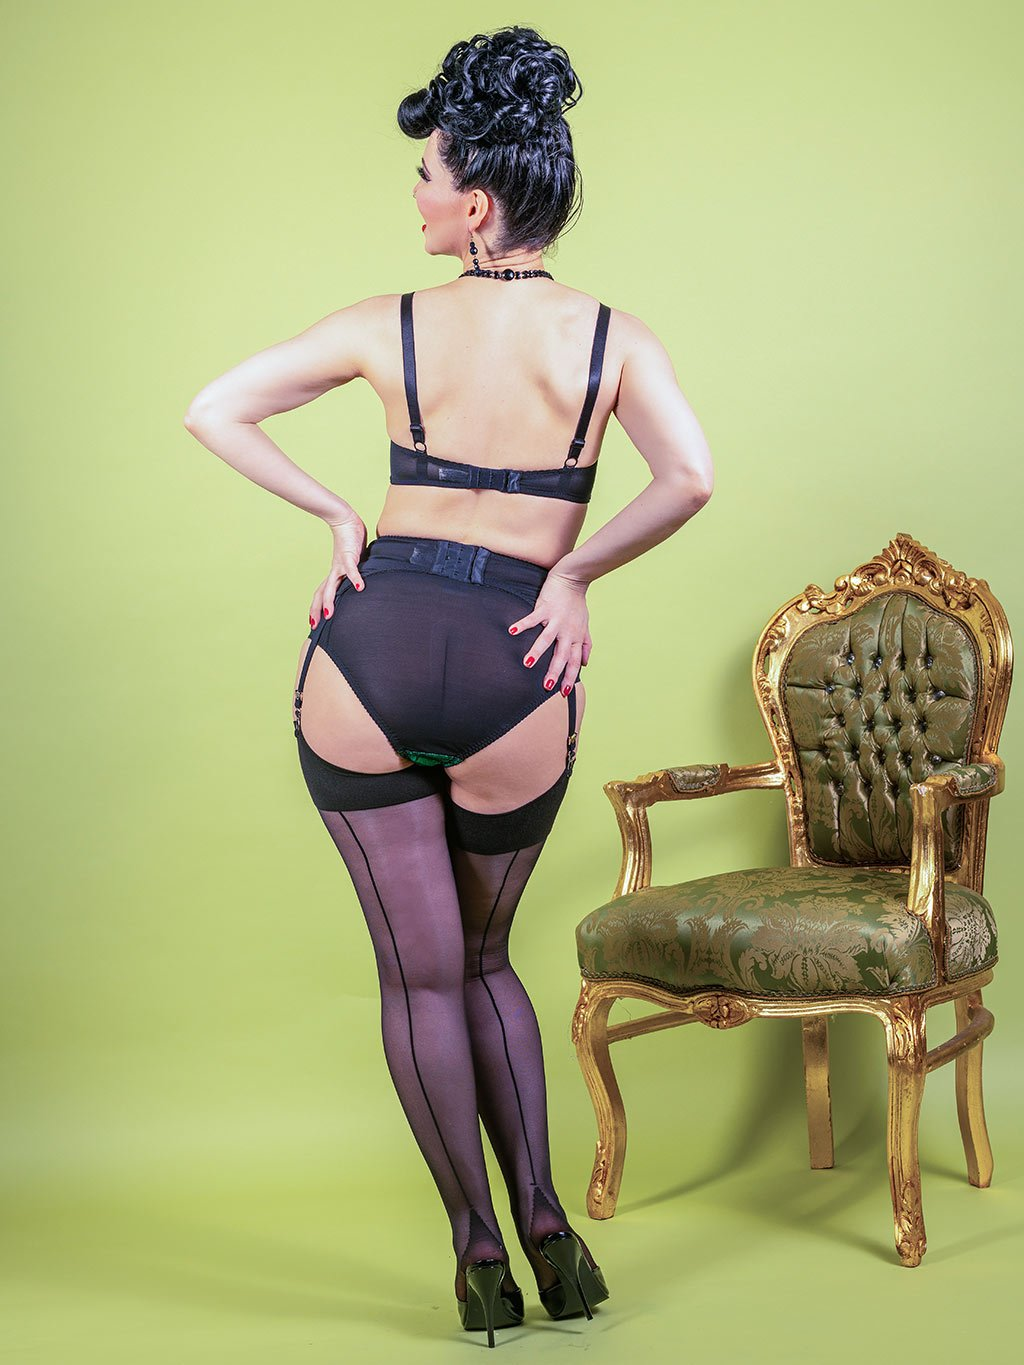 Indulge in your love of vintage glamour on our website where you'll find a fabulous range of vintage inspired seamed stockings and lingerie by What Katie Did.